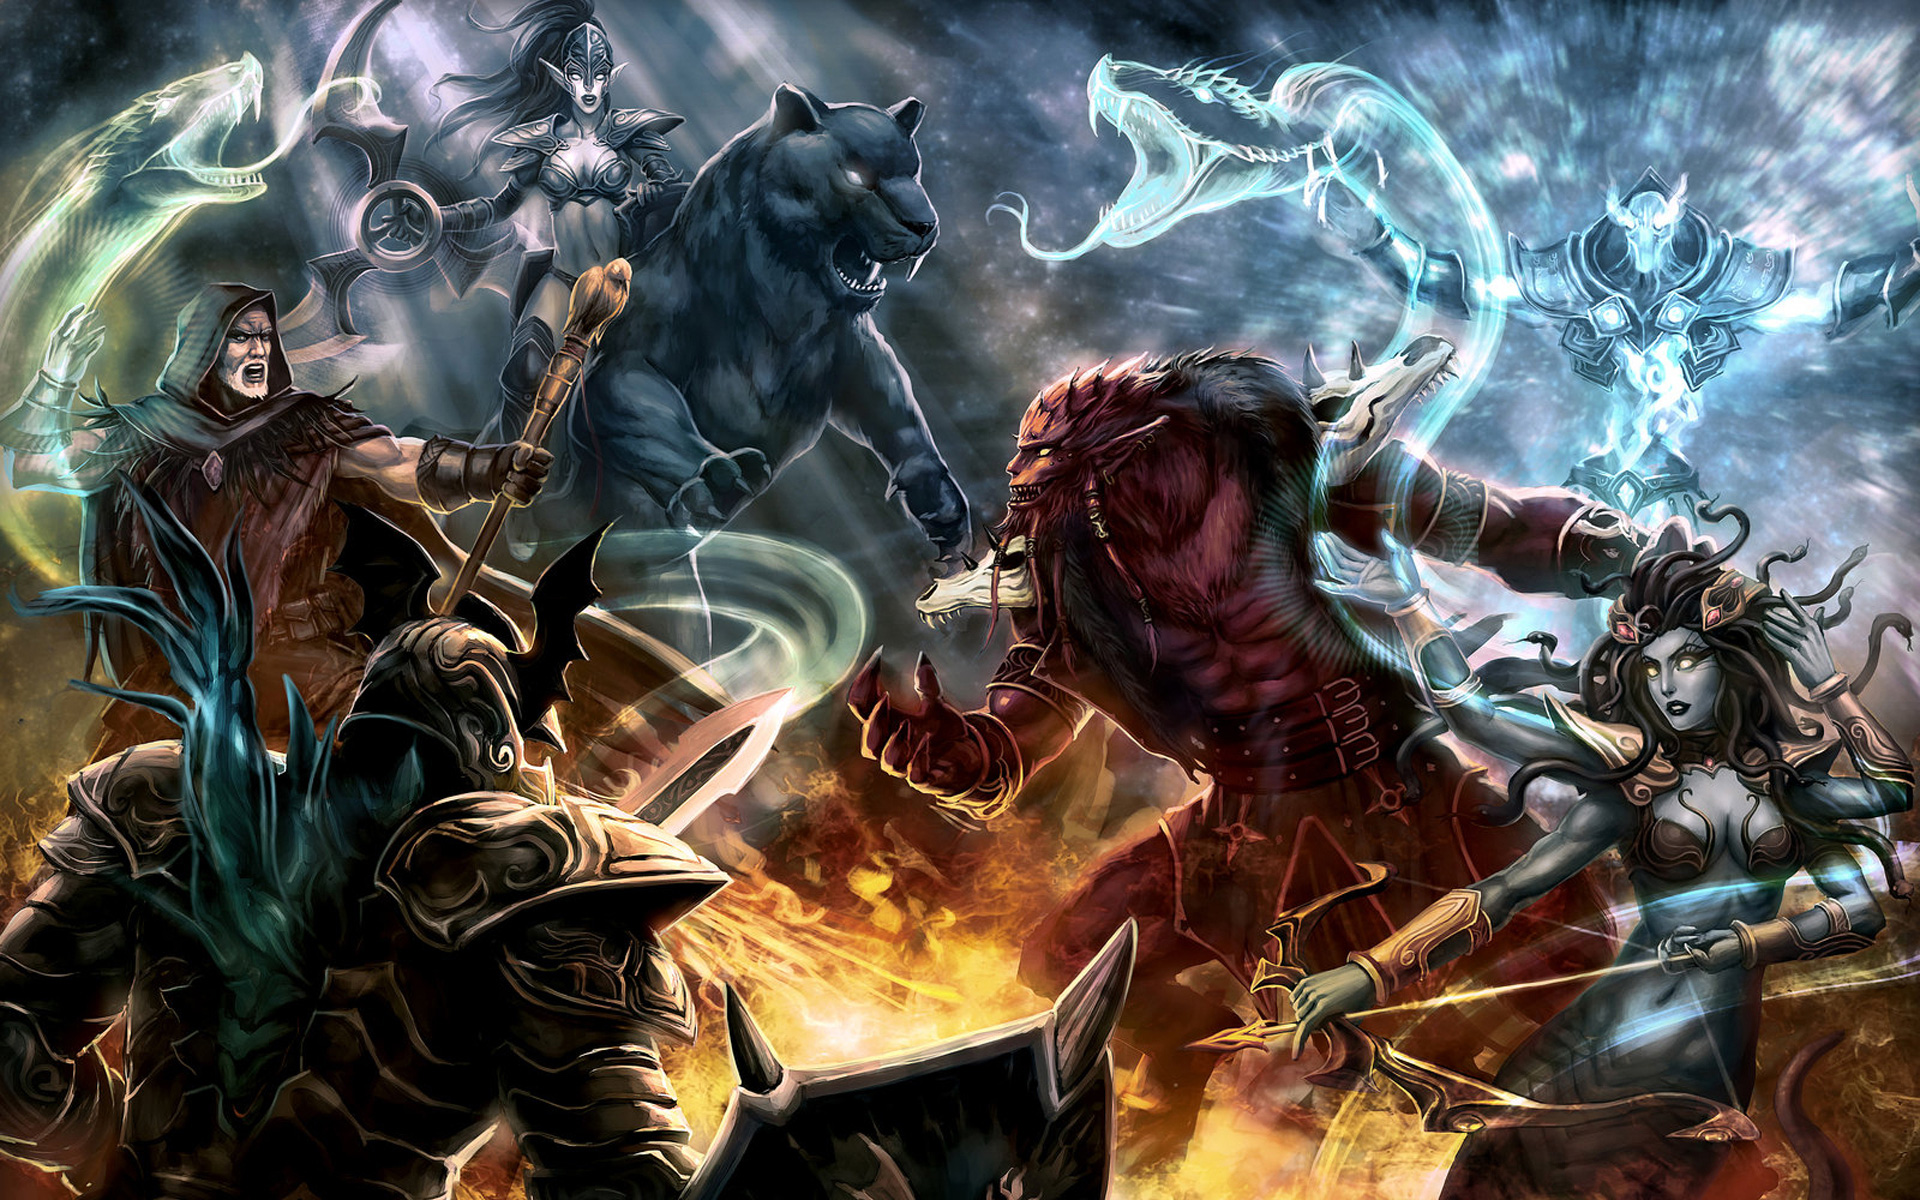 Free DotA: Defense of the Ancients Wallpaper in 1920x1200